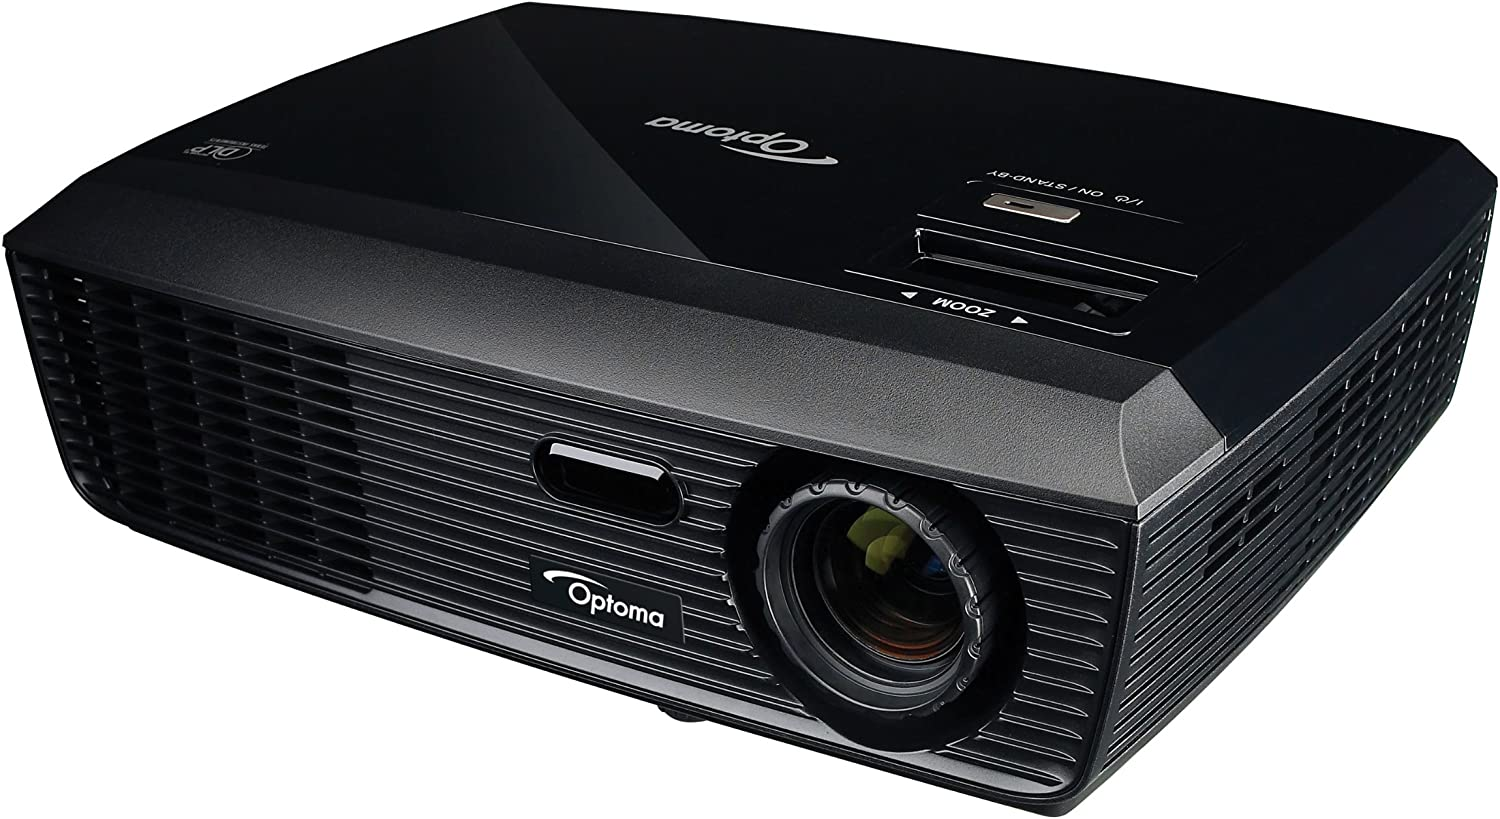 Optoma DW326e WXGA 3000 Lumen Full 3D DLP Projector with HDMI